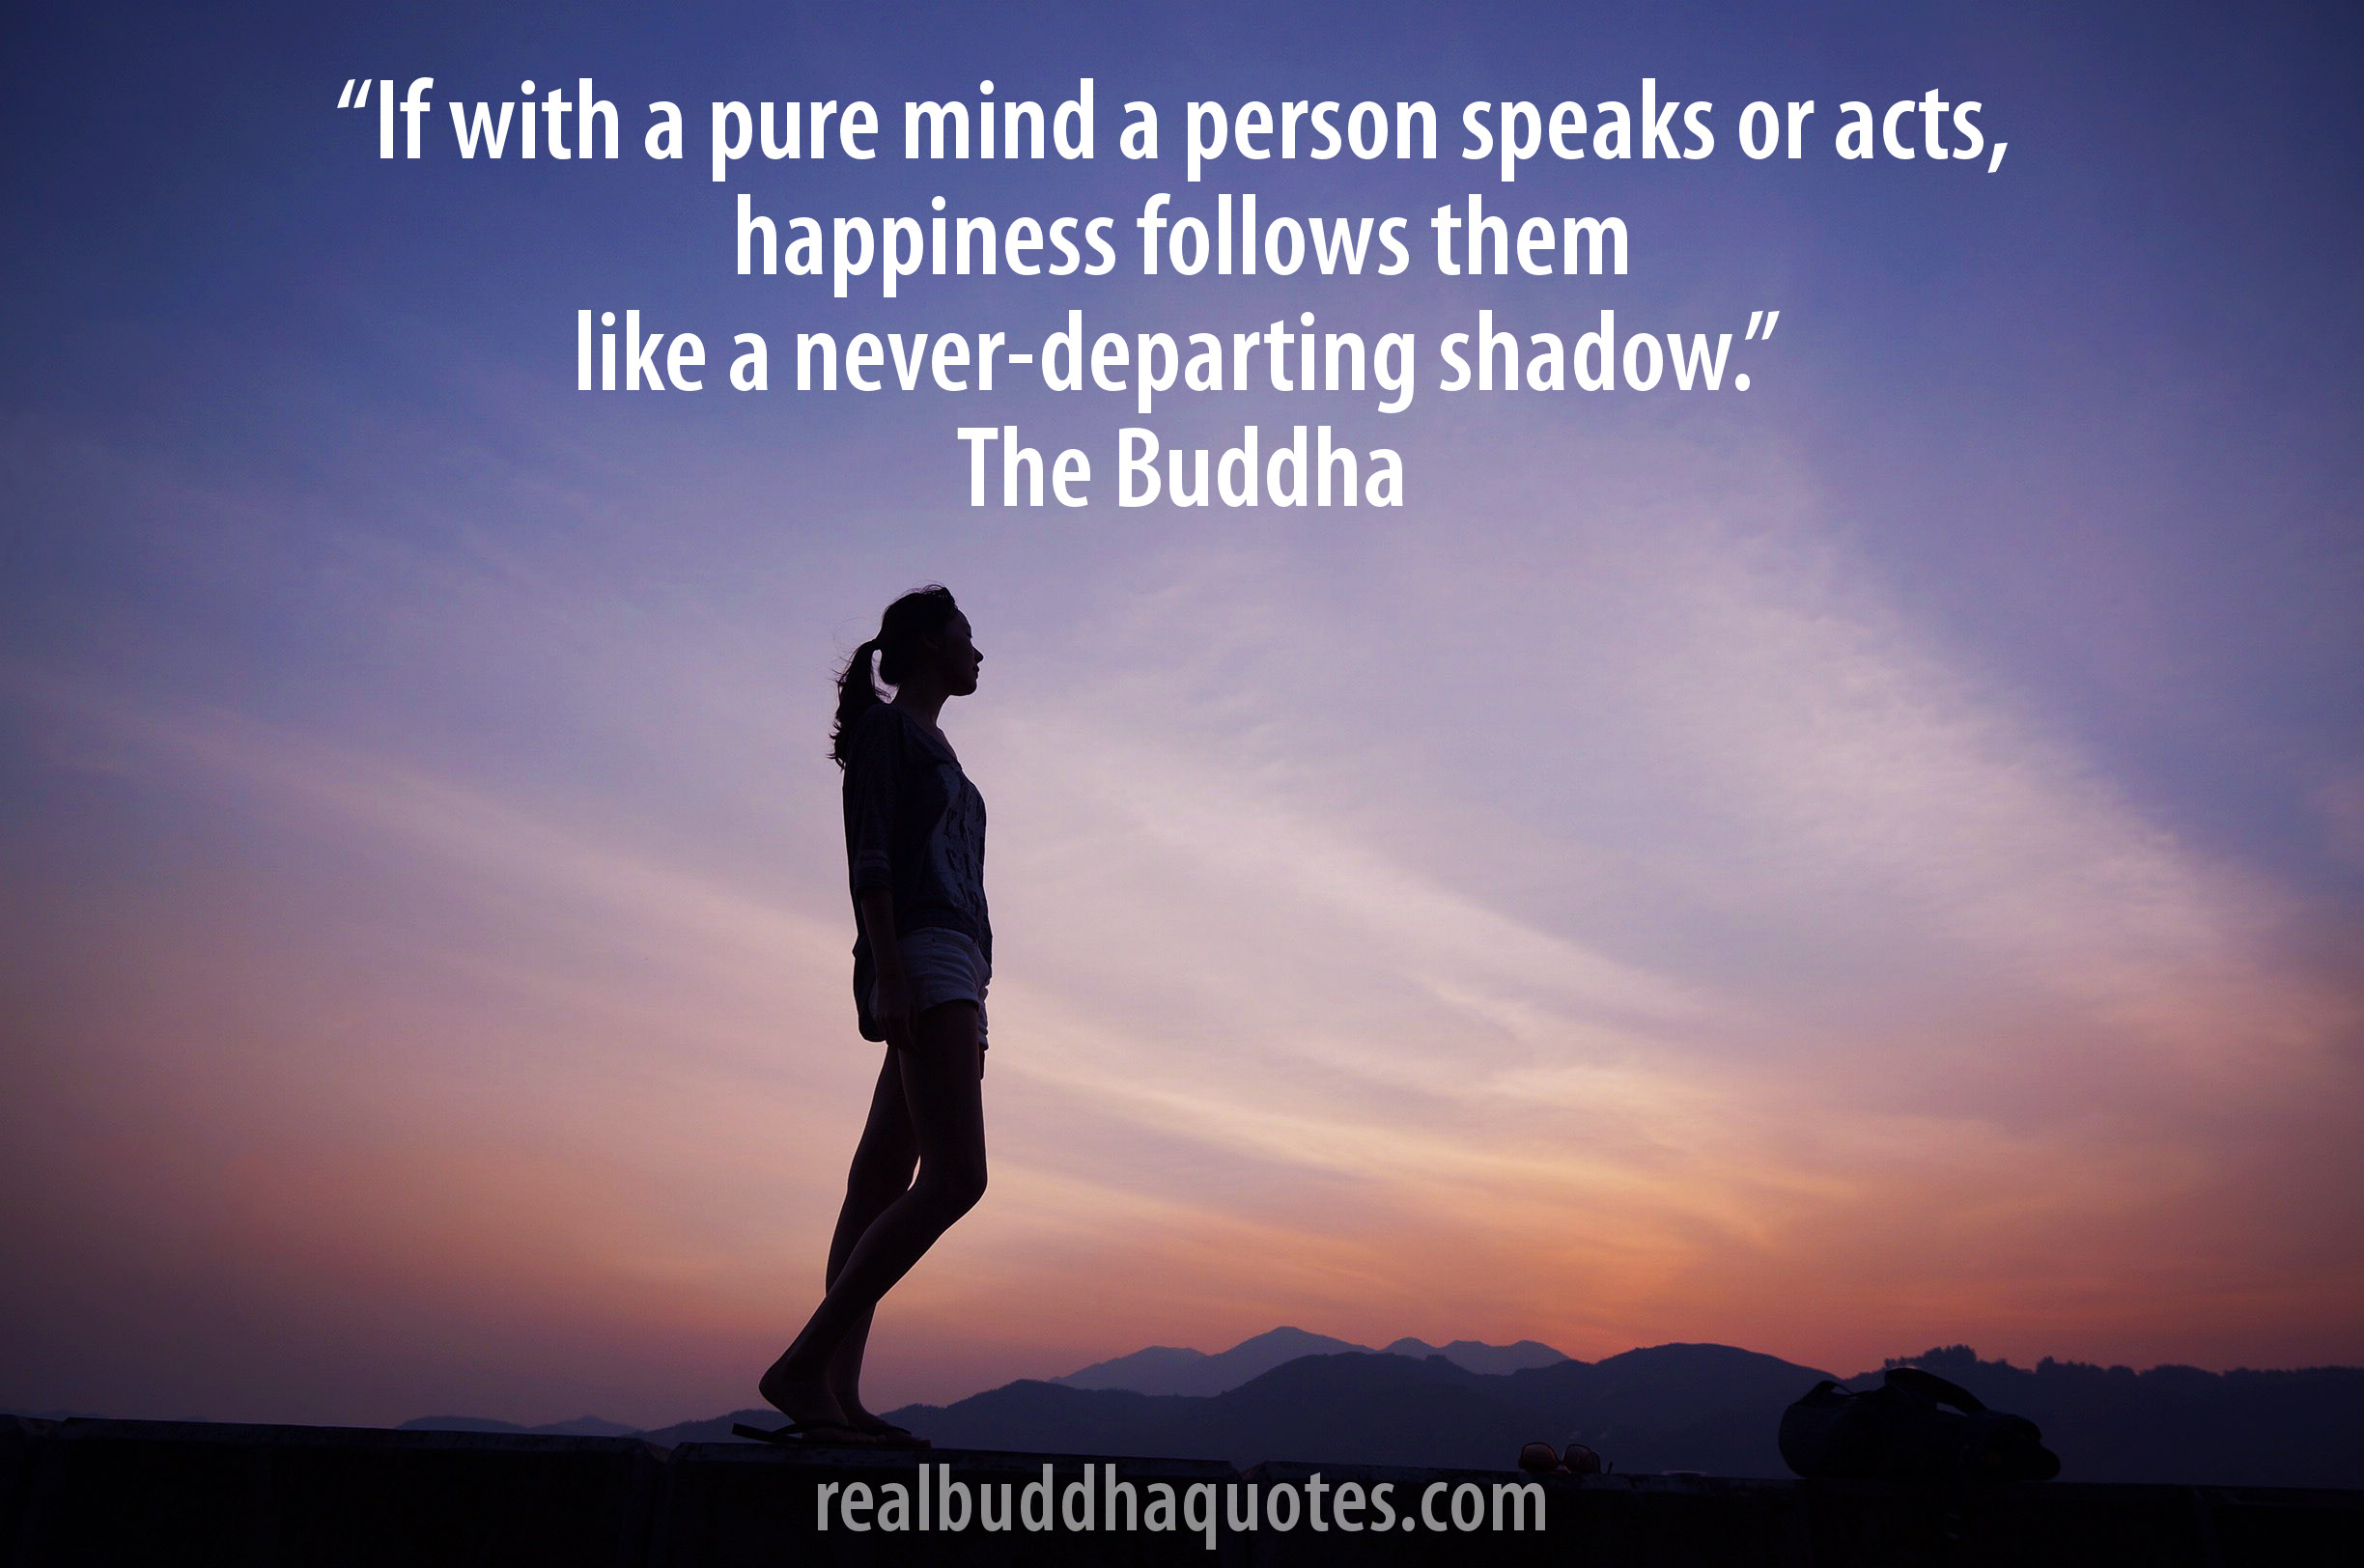 Buddha Quotes On Happiness If With A Pure Mind A Person Speaks Or Acts Happiness Follows